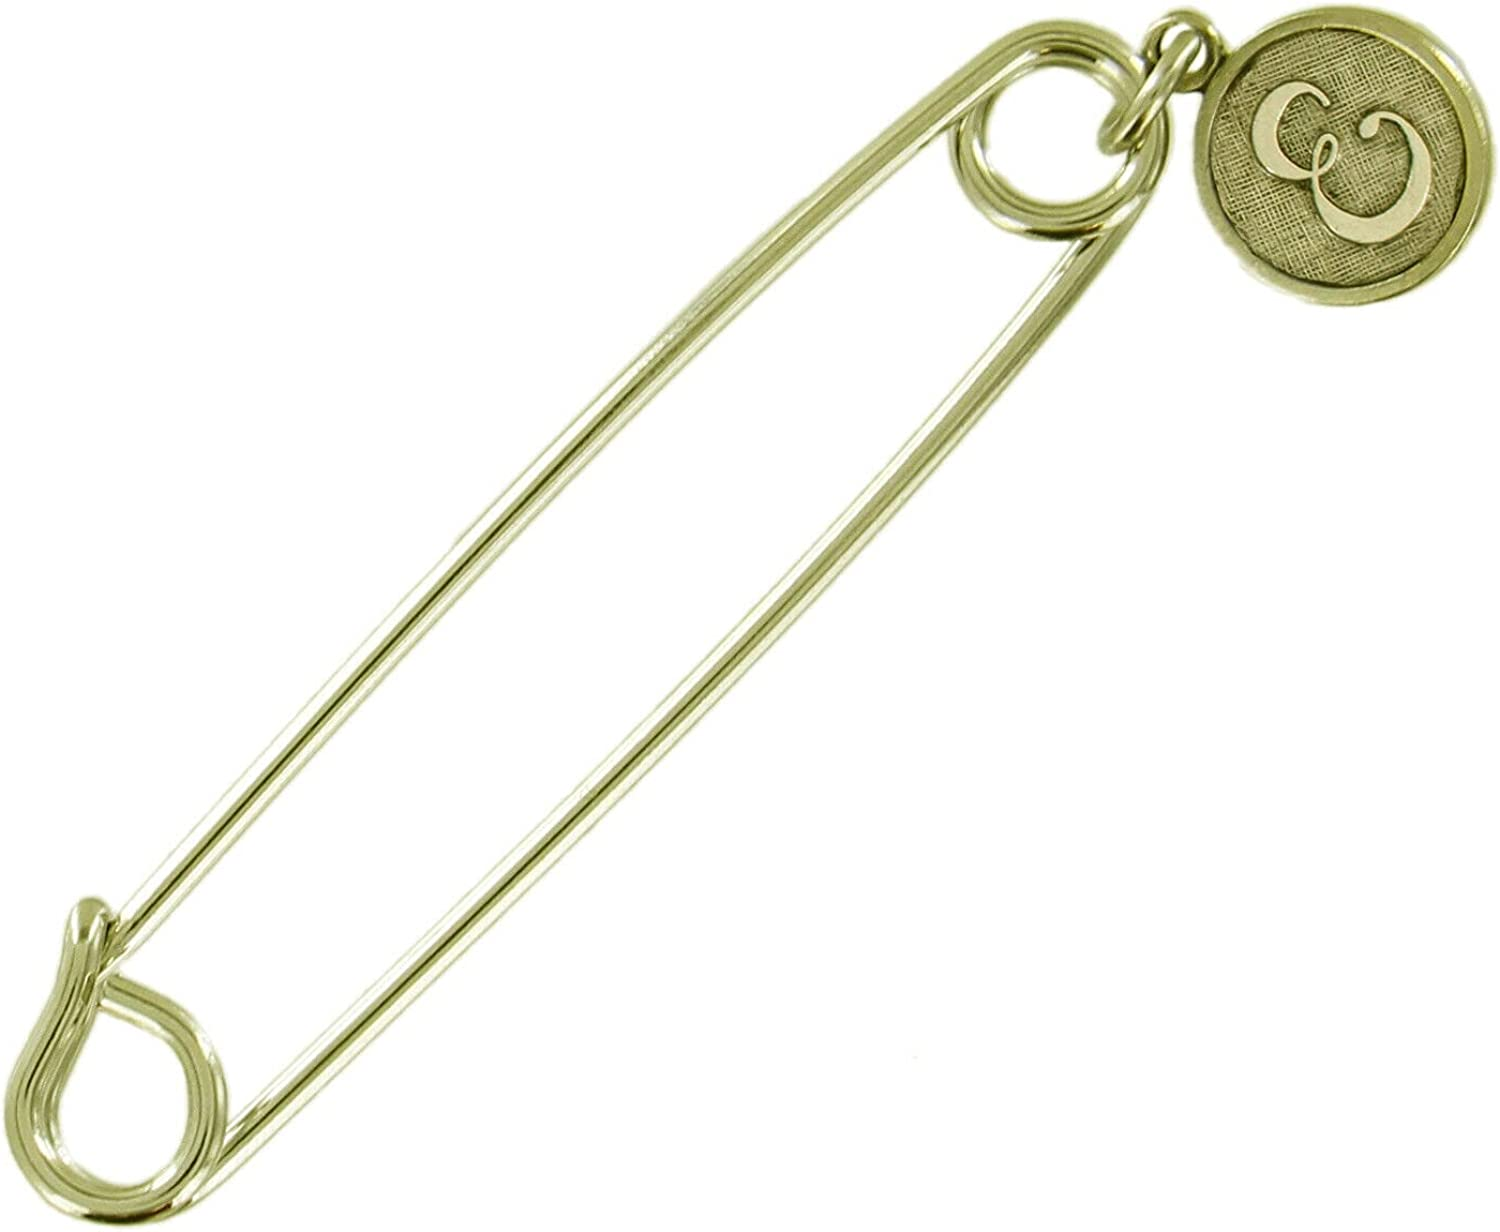 Ð¡harm Boston Mall - Cheap super special price Safety Pin Brooch Gold Letter Tone E En Initial Cursive